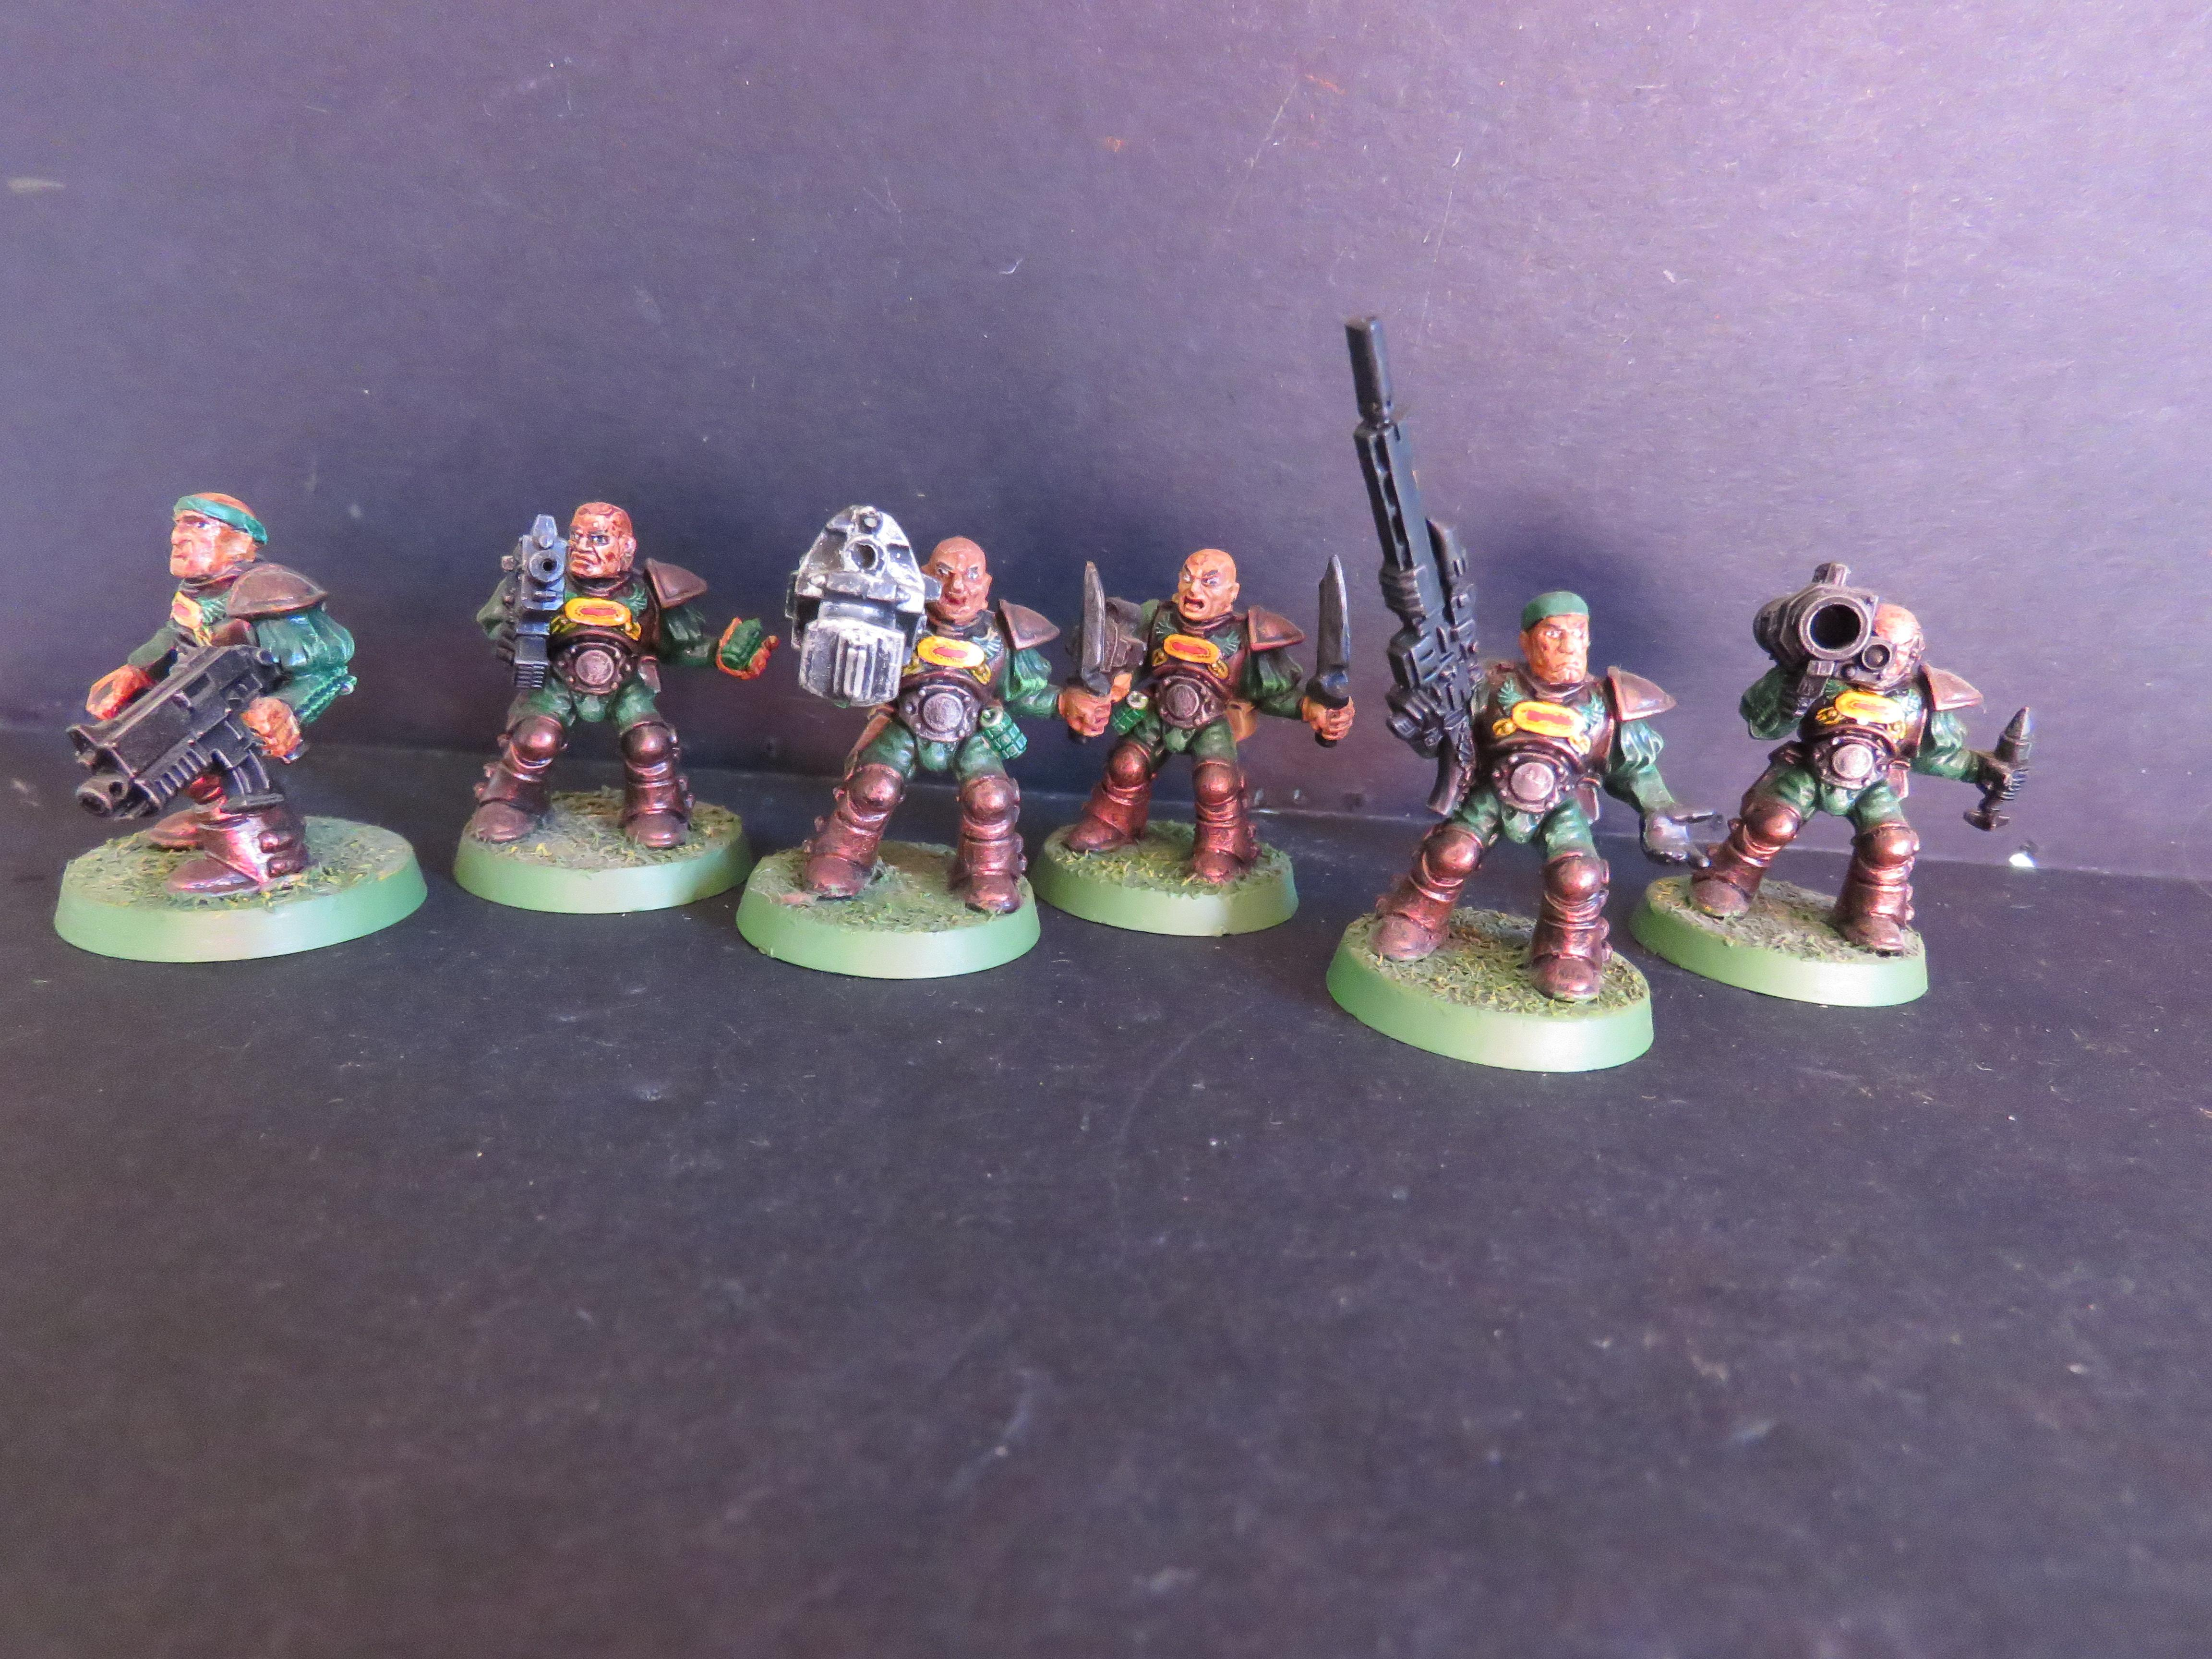 Old-school, Oldhammer, Plastic, Retro, Rogue Trader, Scouts, Space Marines, Warhammer 40,000